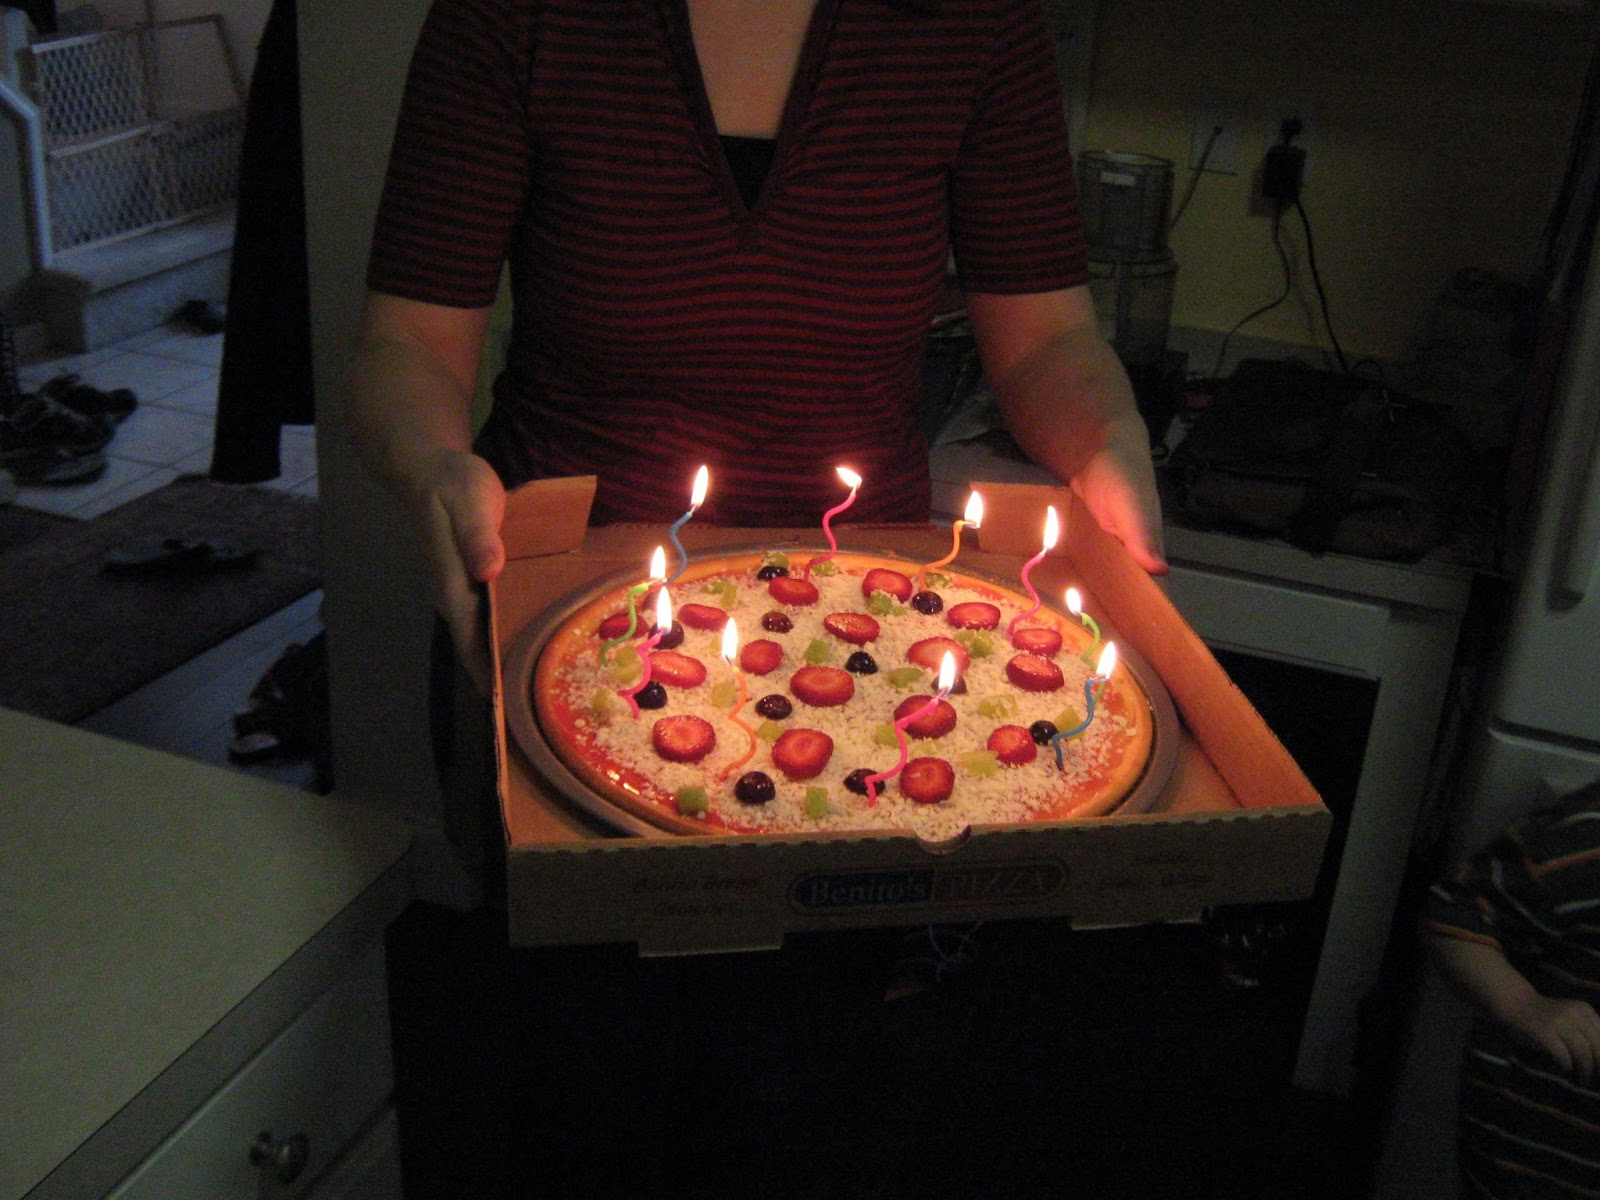 Birthday Cake Photo Galleries : Deb s Birthday Cake Ideas for Kids Photo Gallery: Pizza ...